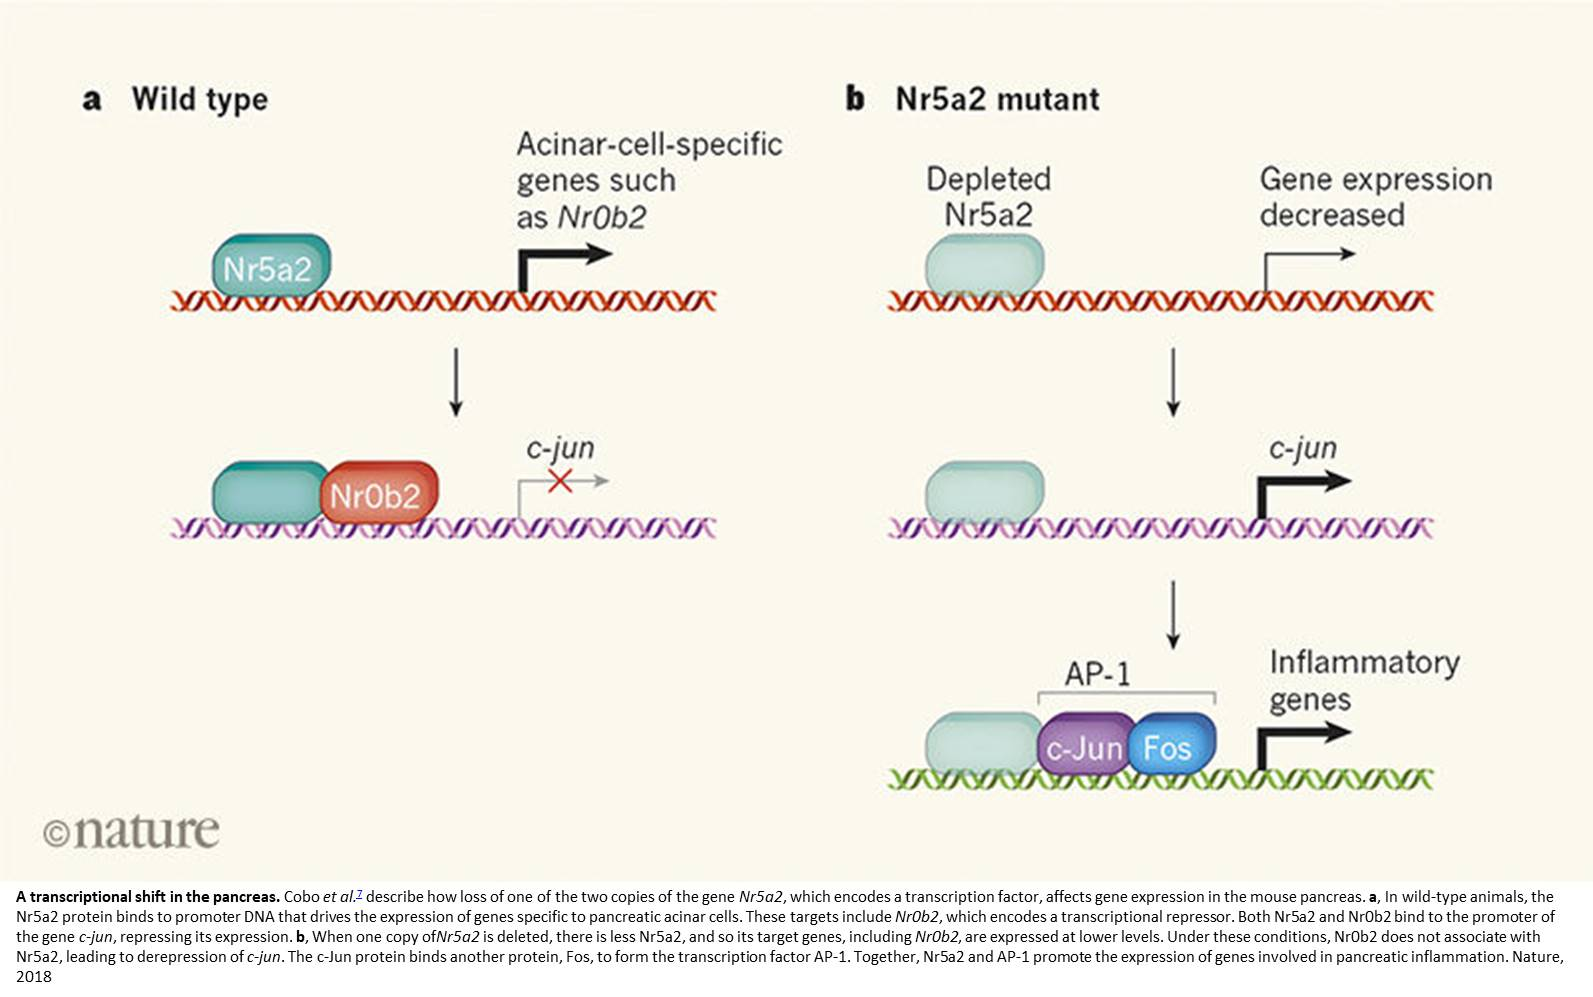 Role of an inflammation gene in cancer development